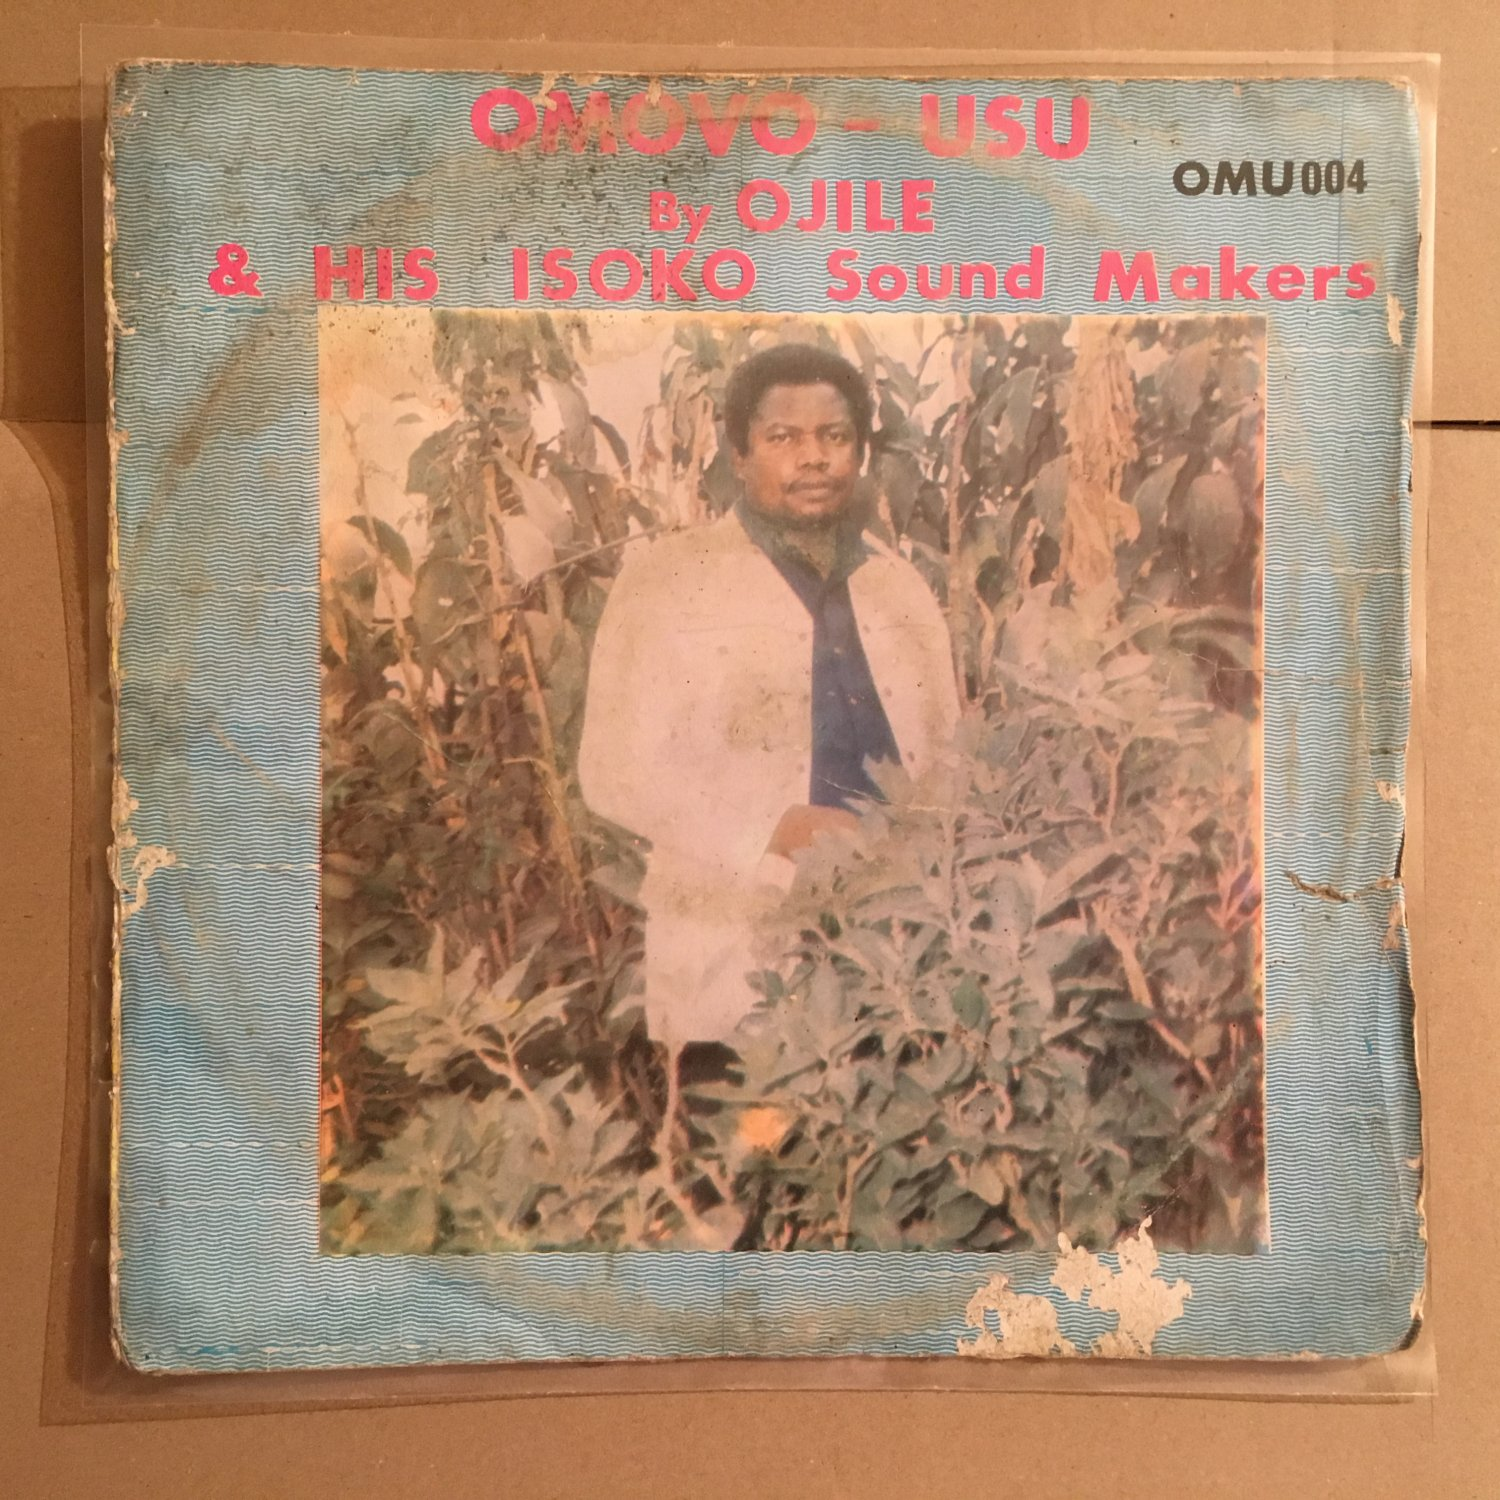 OJILE & HIS ISOKO SOUND MAKERS LP omovo usu NIGERIA COSMIC